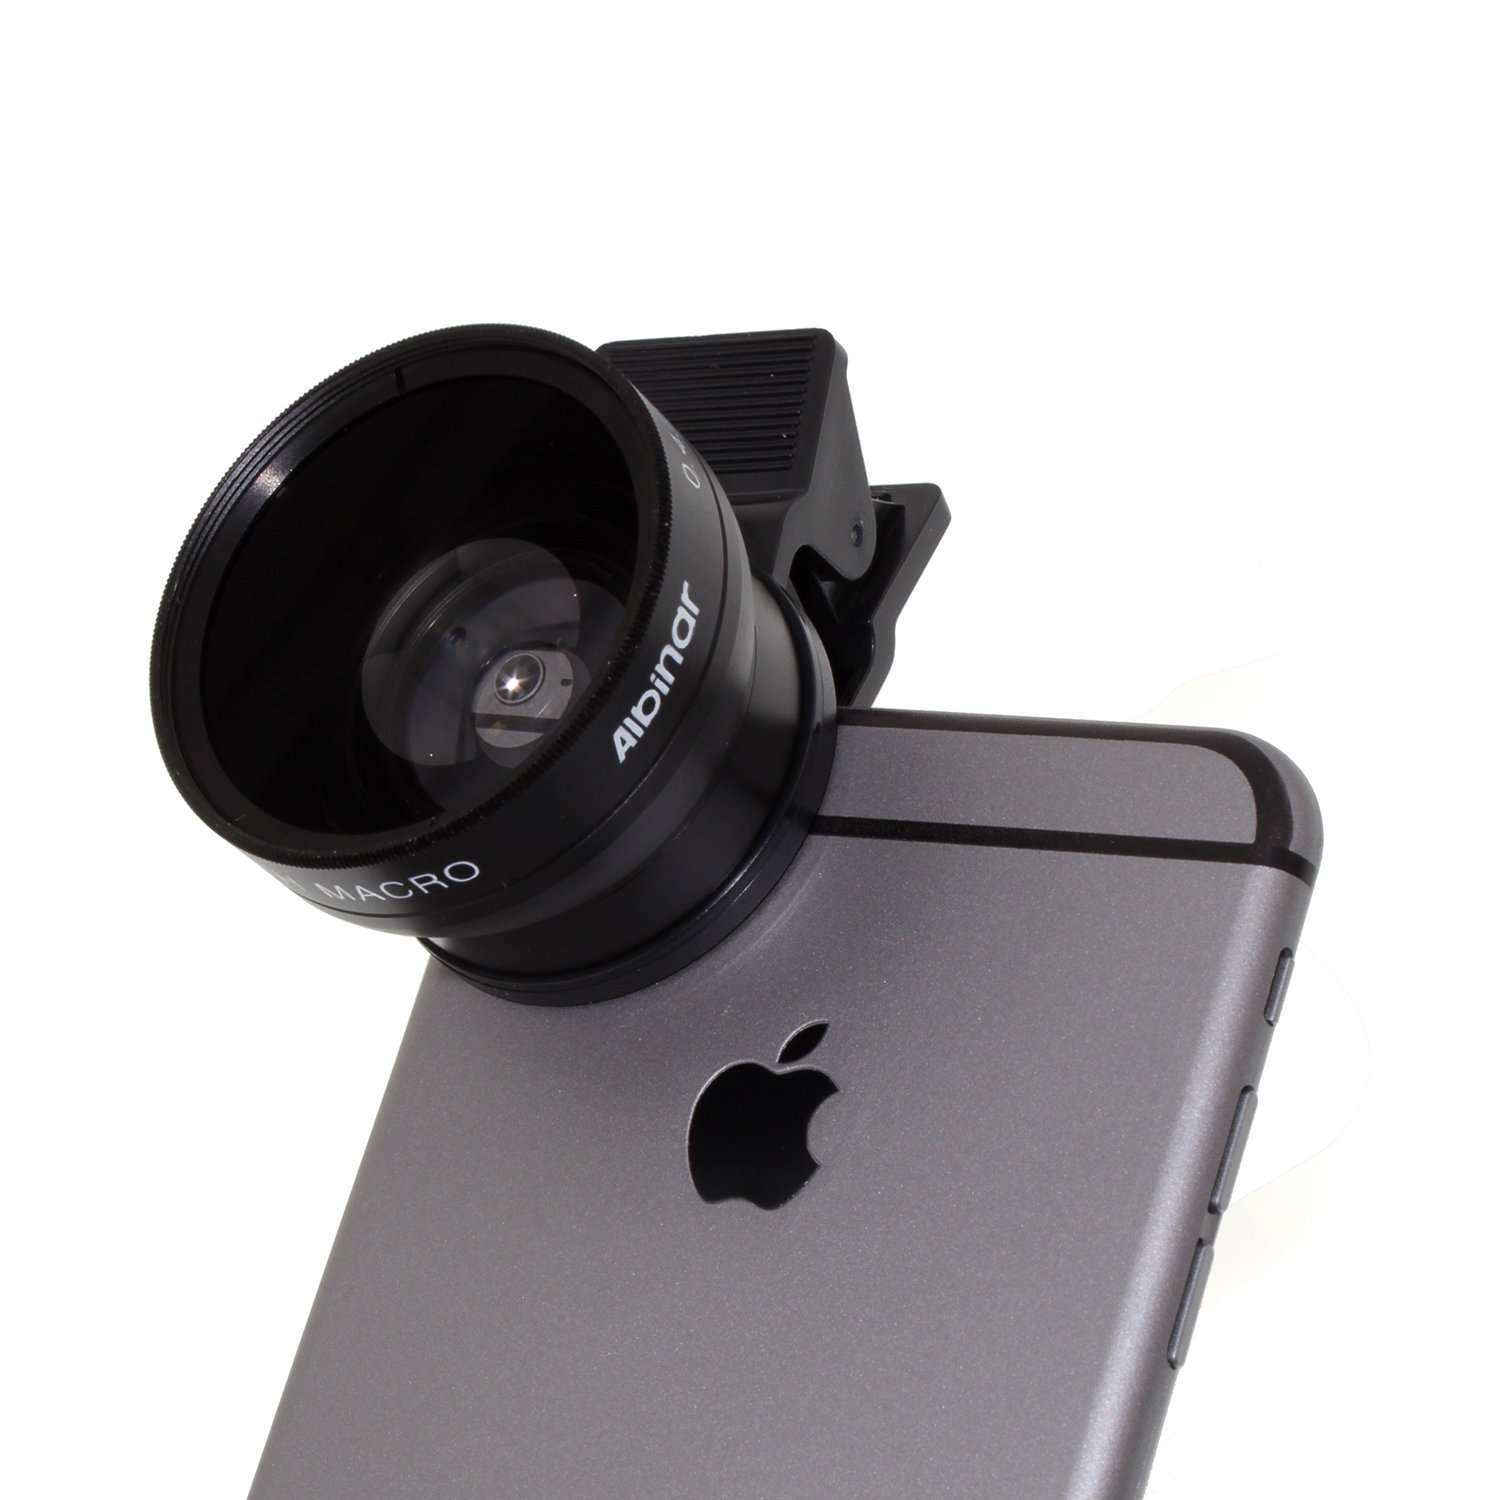 Albinar 2 in 1 Clip-On 0.45X Professional 37mm Wide Angle High Definition Lens with 10X Macro for Apple iPhone 6s 6 plus 6 5 iPad Samsung Galaxy Android Mobile Smart Phones & Tablets